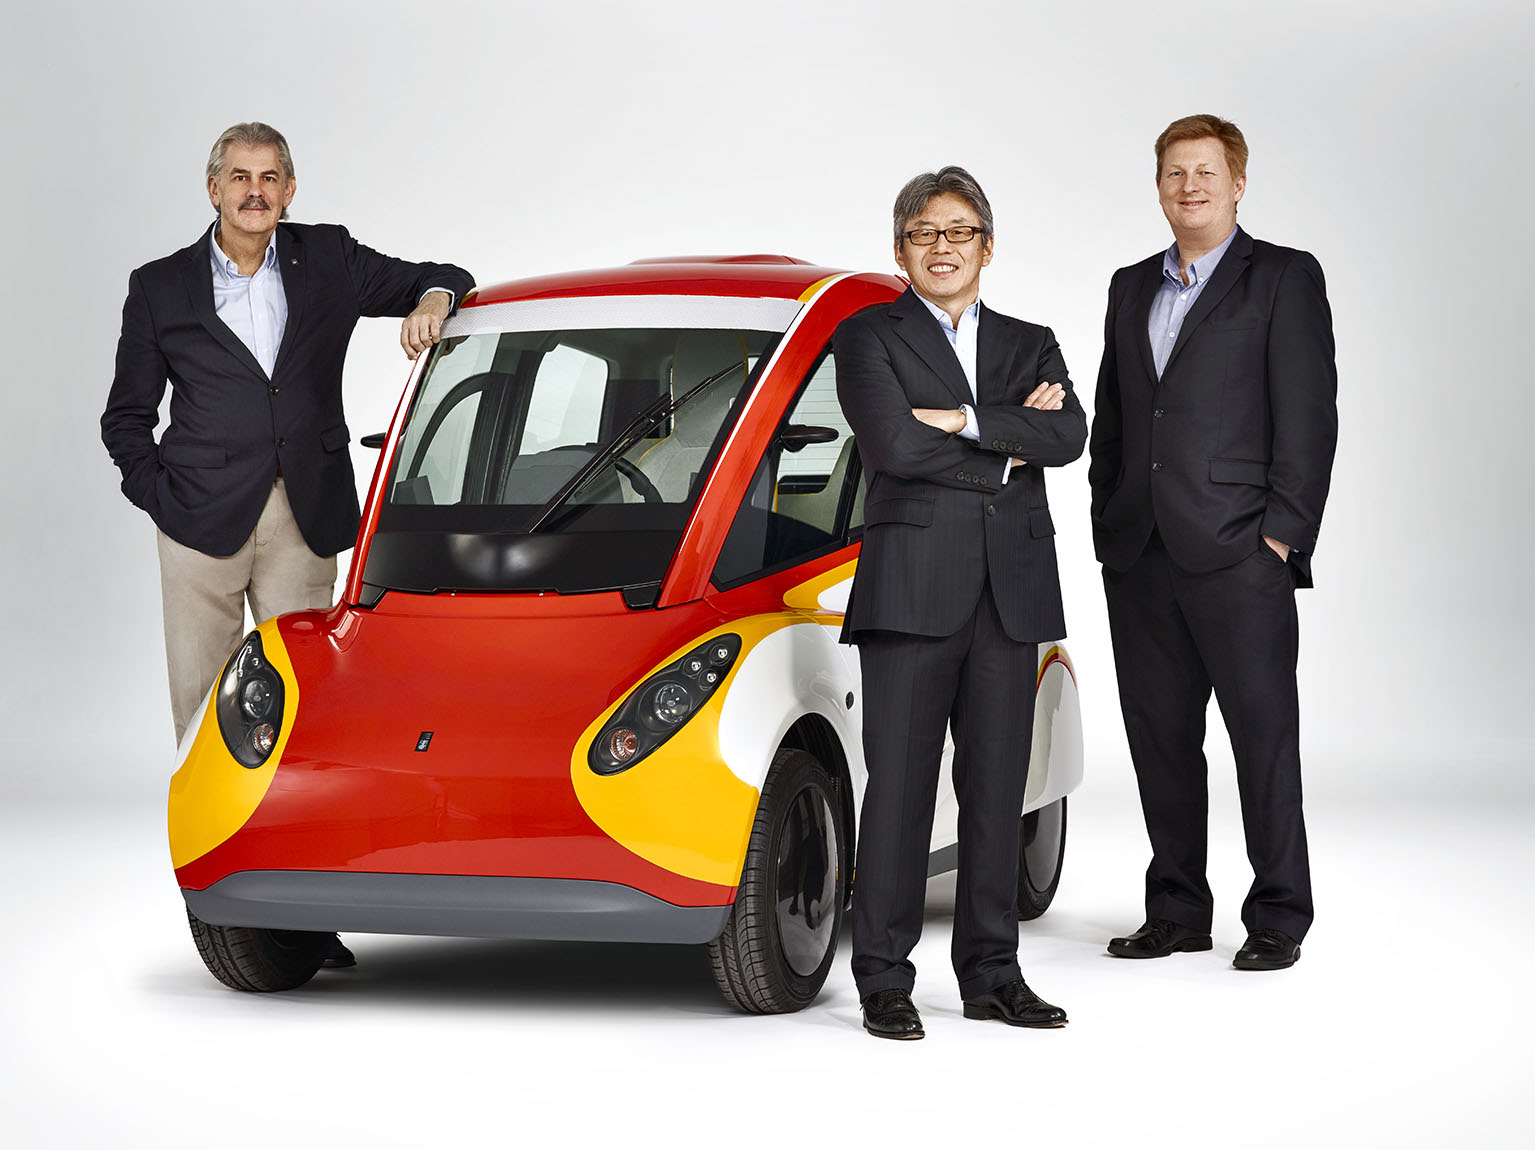 Shell Unveils 107mpg Gasoline-Based Ultra Energy Efficient Concept Car